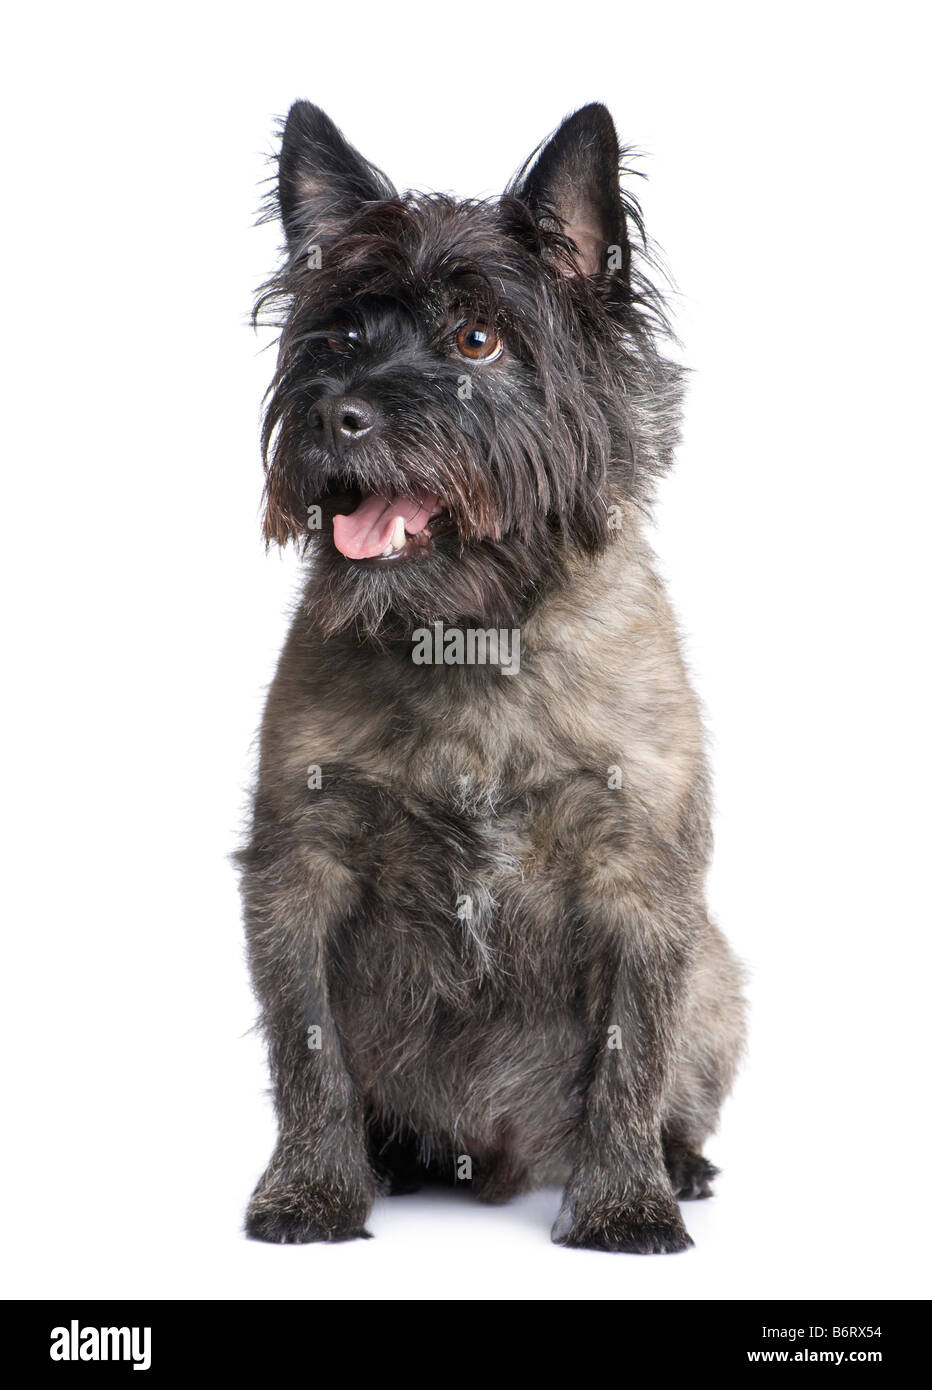 Cairn Terrier 8 years in front of a white background - Stock Image